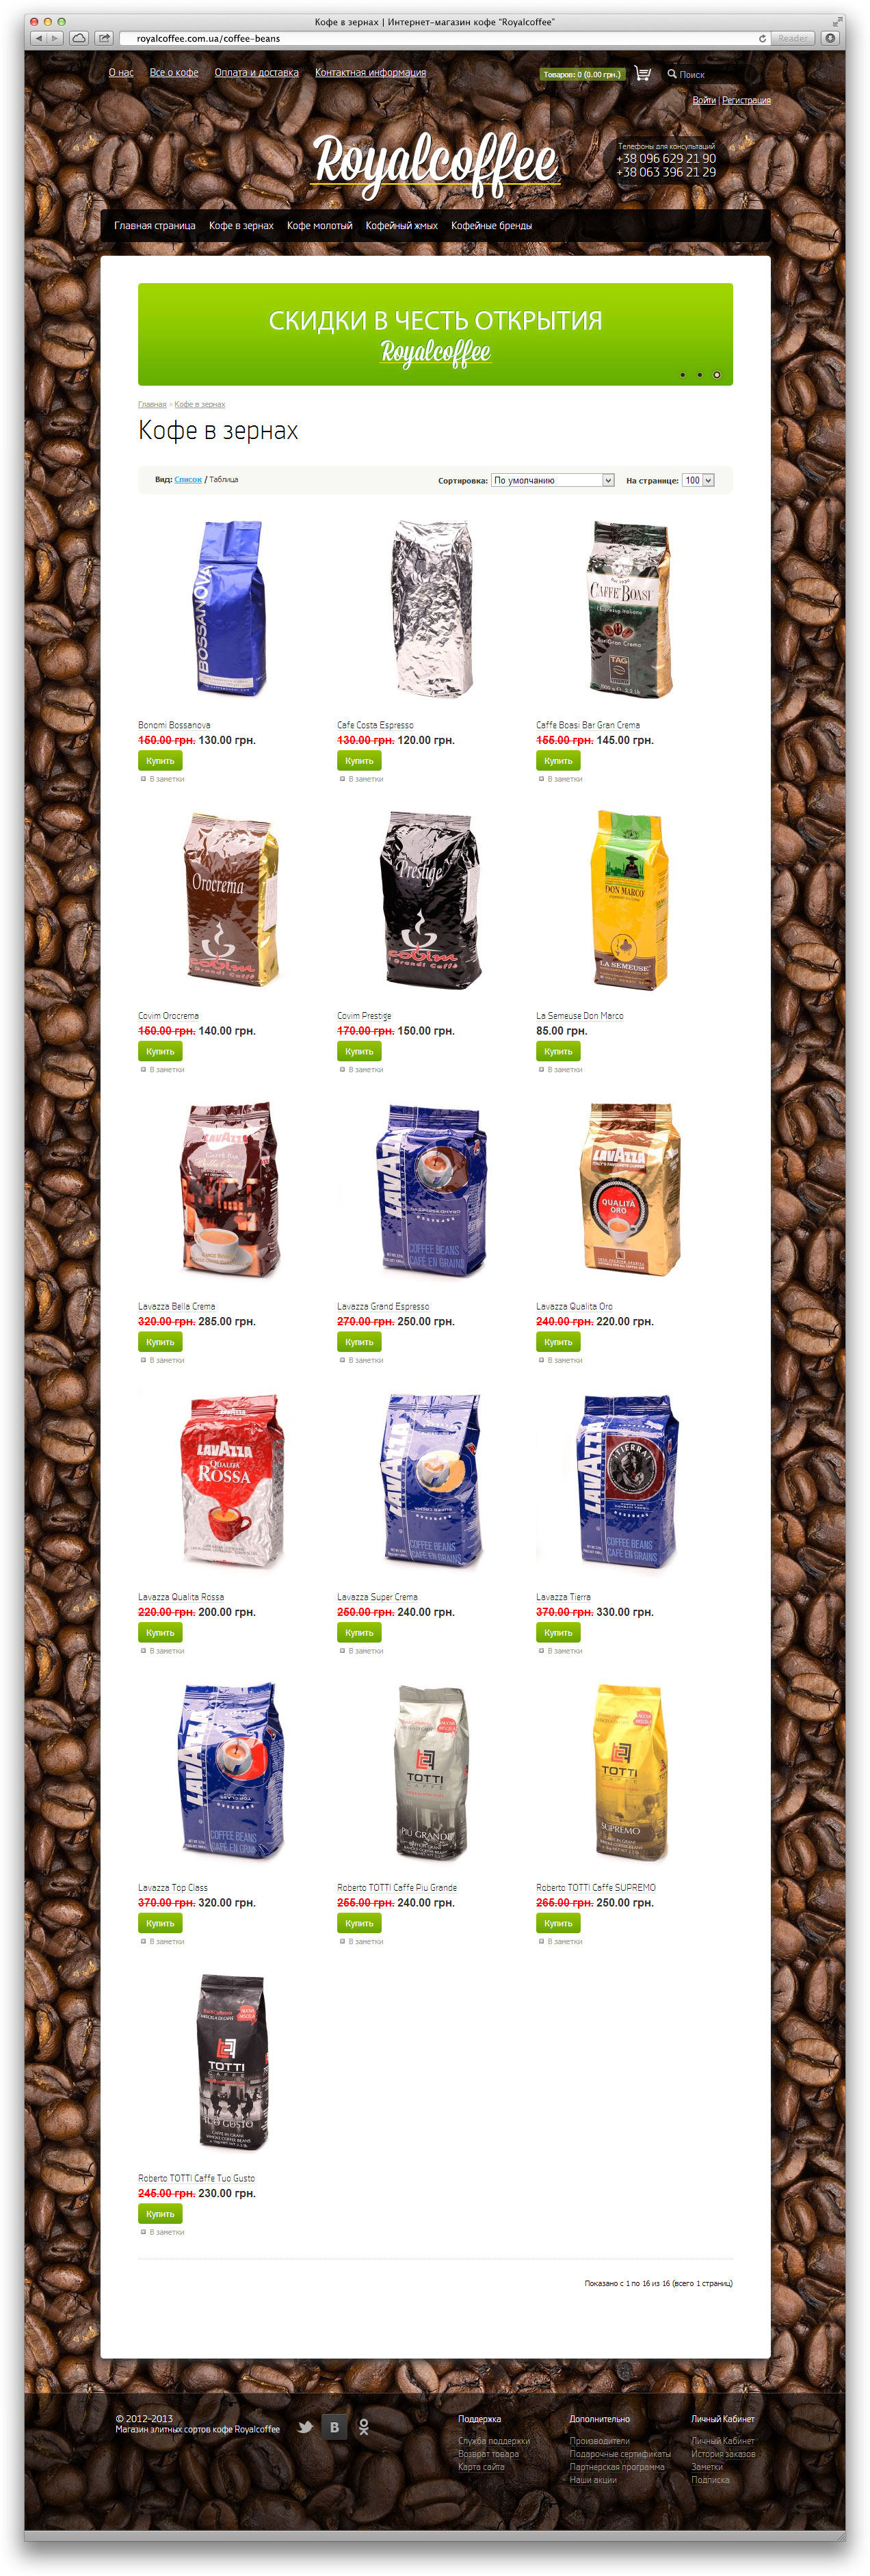 royalcoffee-category-coffee-beans